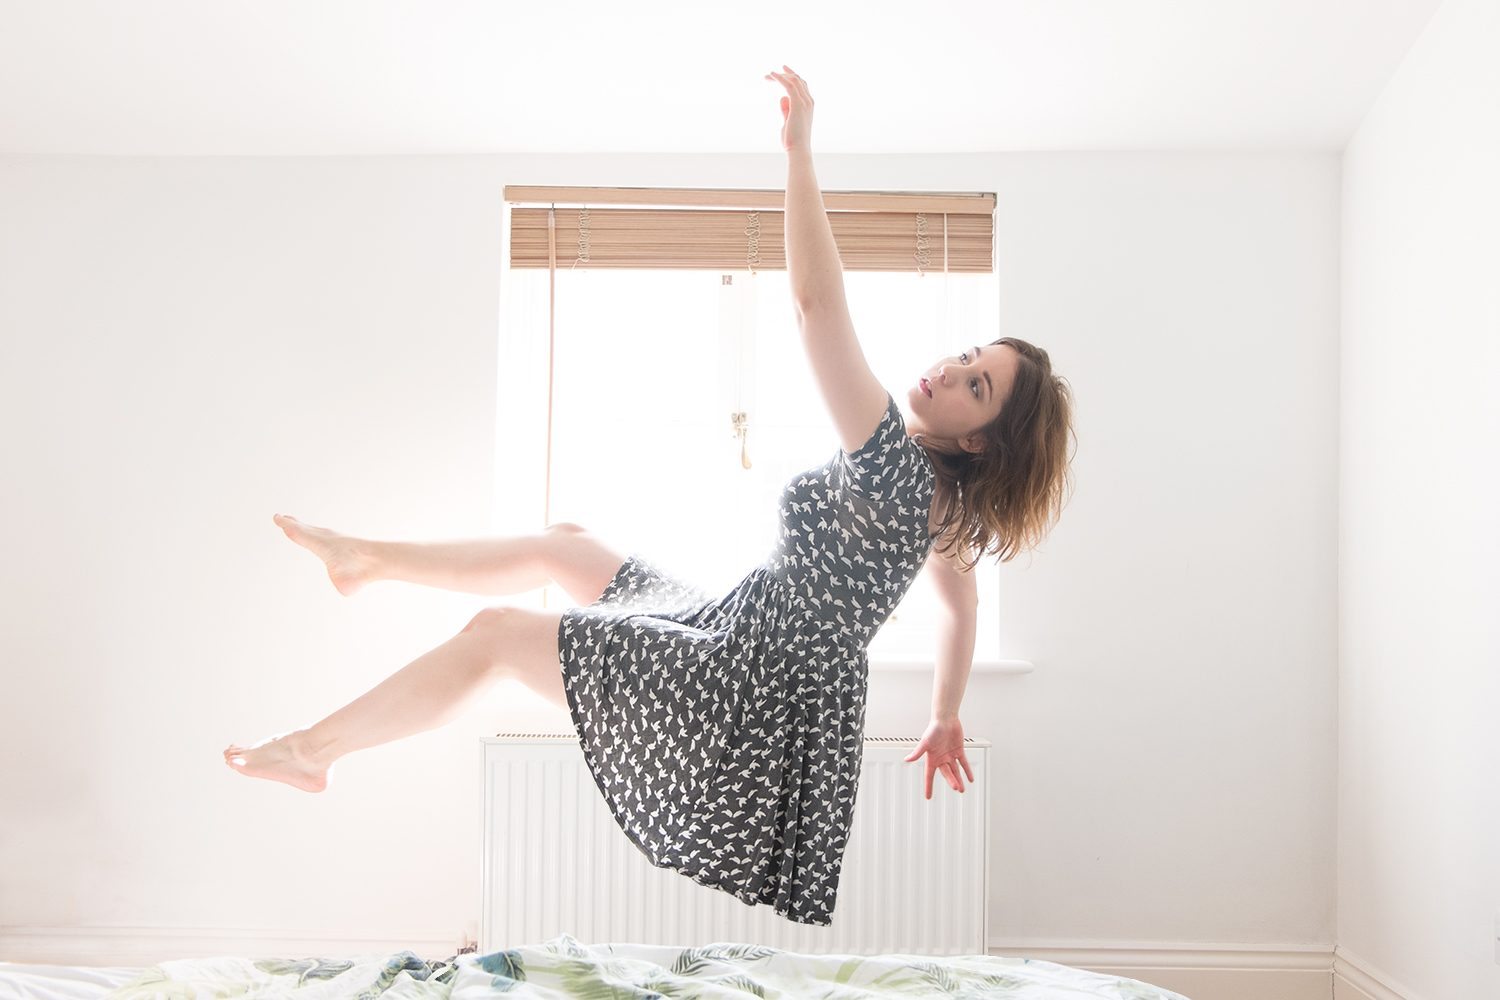 A photo of me levitating in front of a window, with my arms and legs floating around.